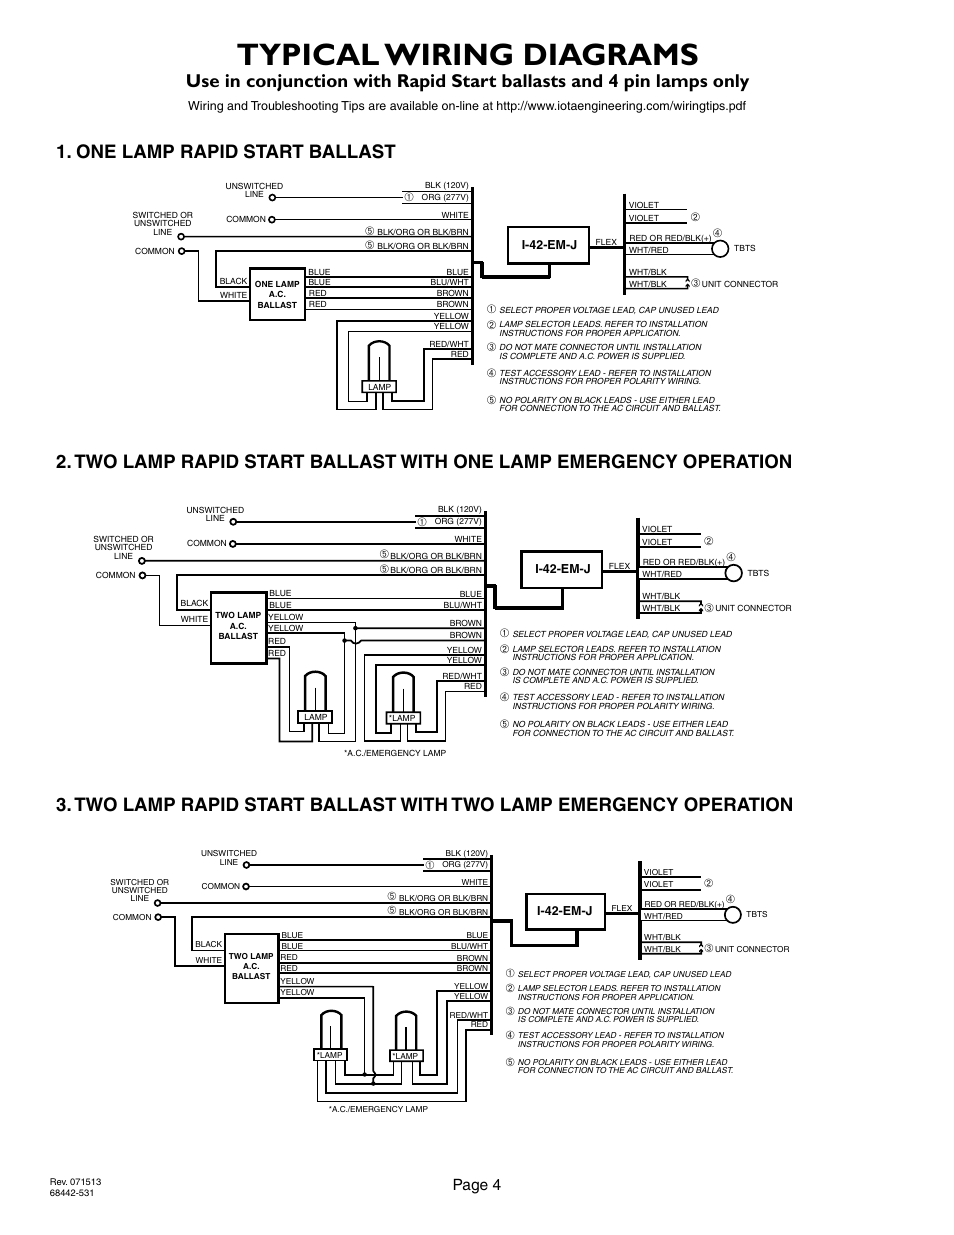 iota i 42 em j page4 10ta emergency light ballast wiring diagram i 32 emergency ballast ps300 emergency ballast wiring diagram at gsmportal.co